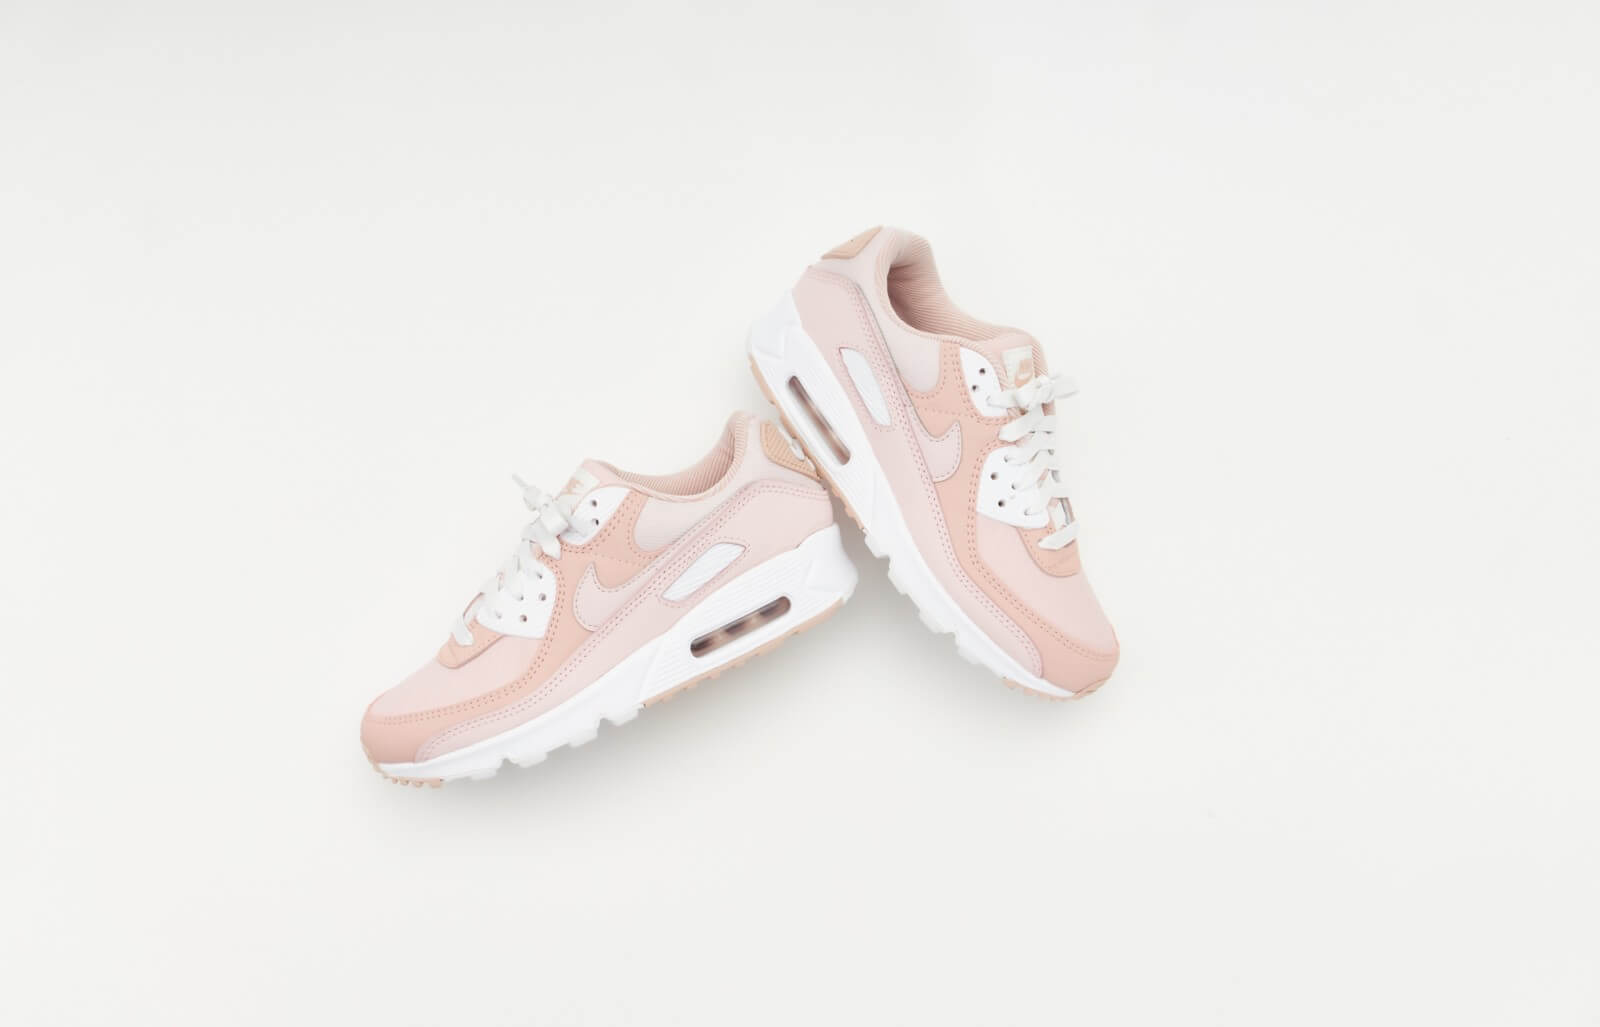 Nike Women's Air Max 90 Barely Rose/Pink Oxford